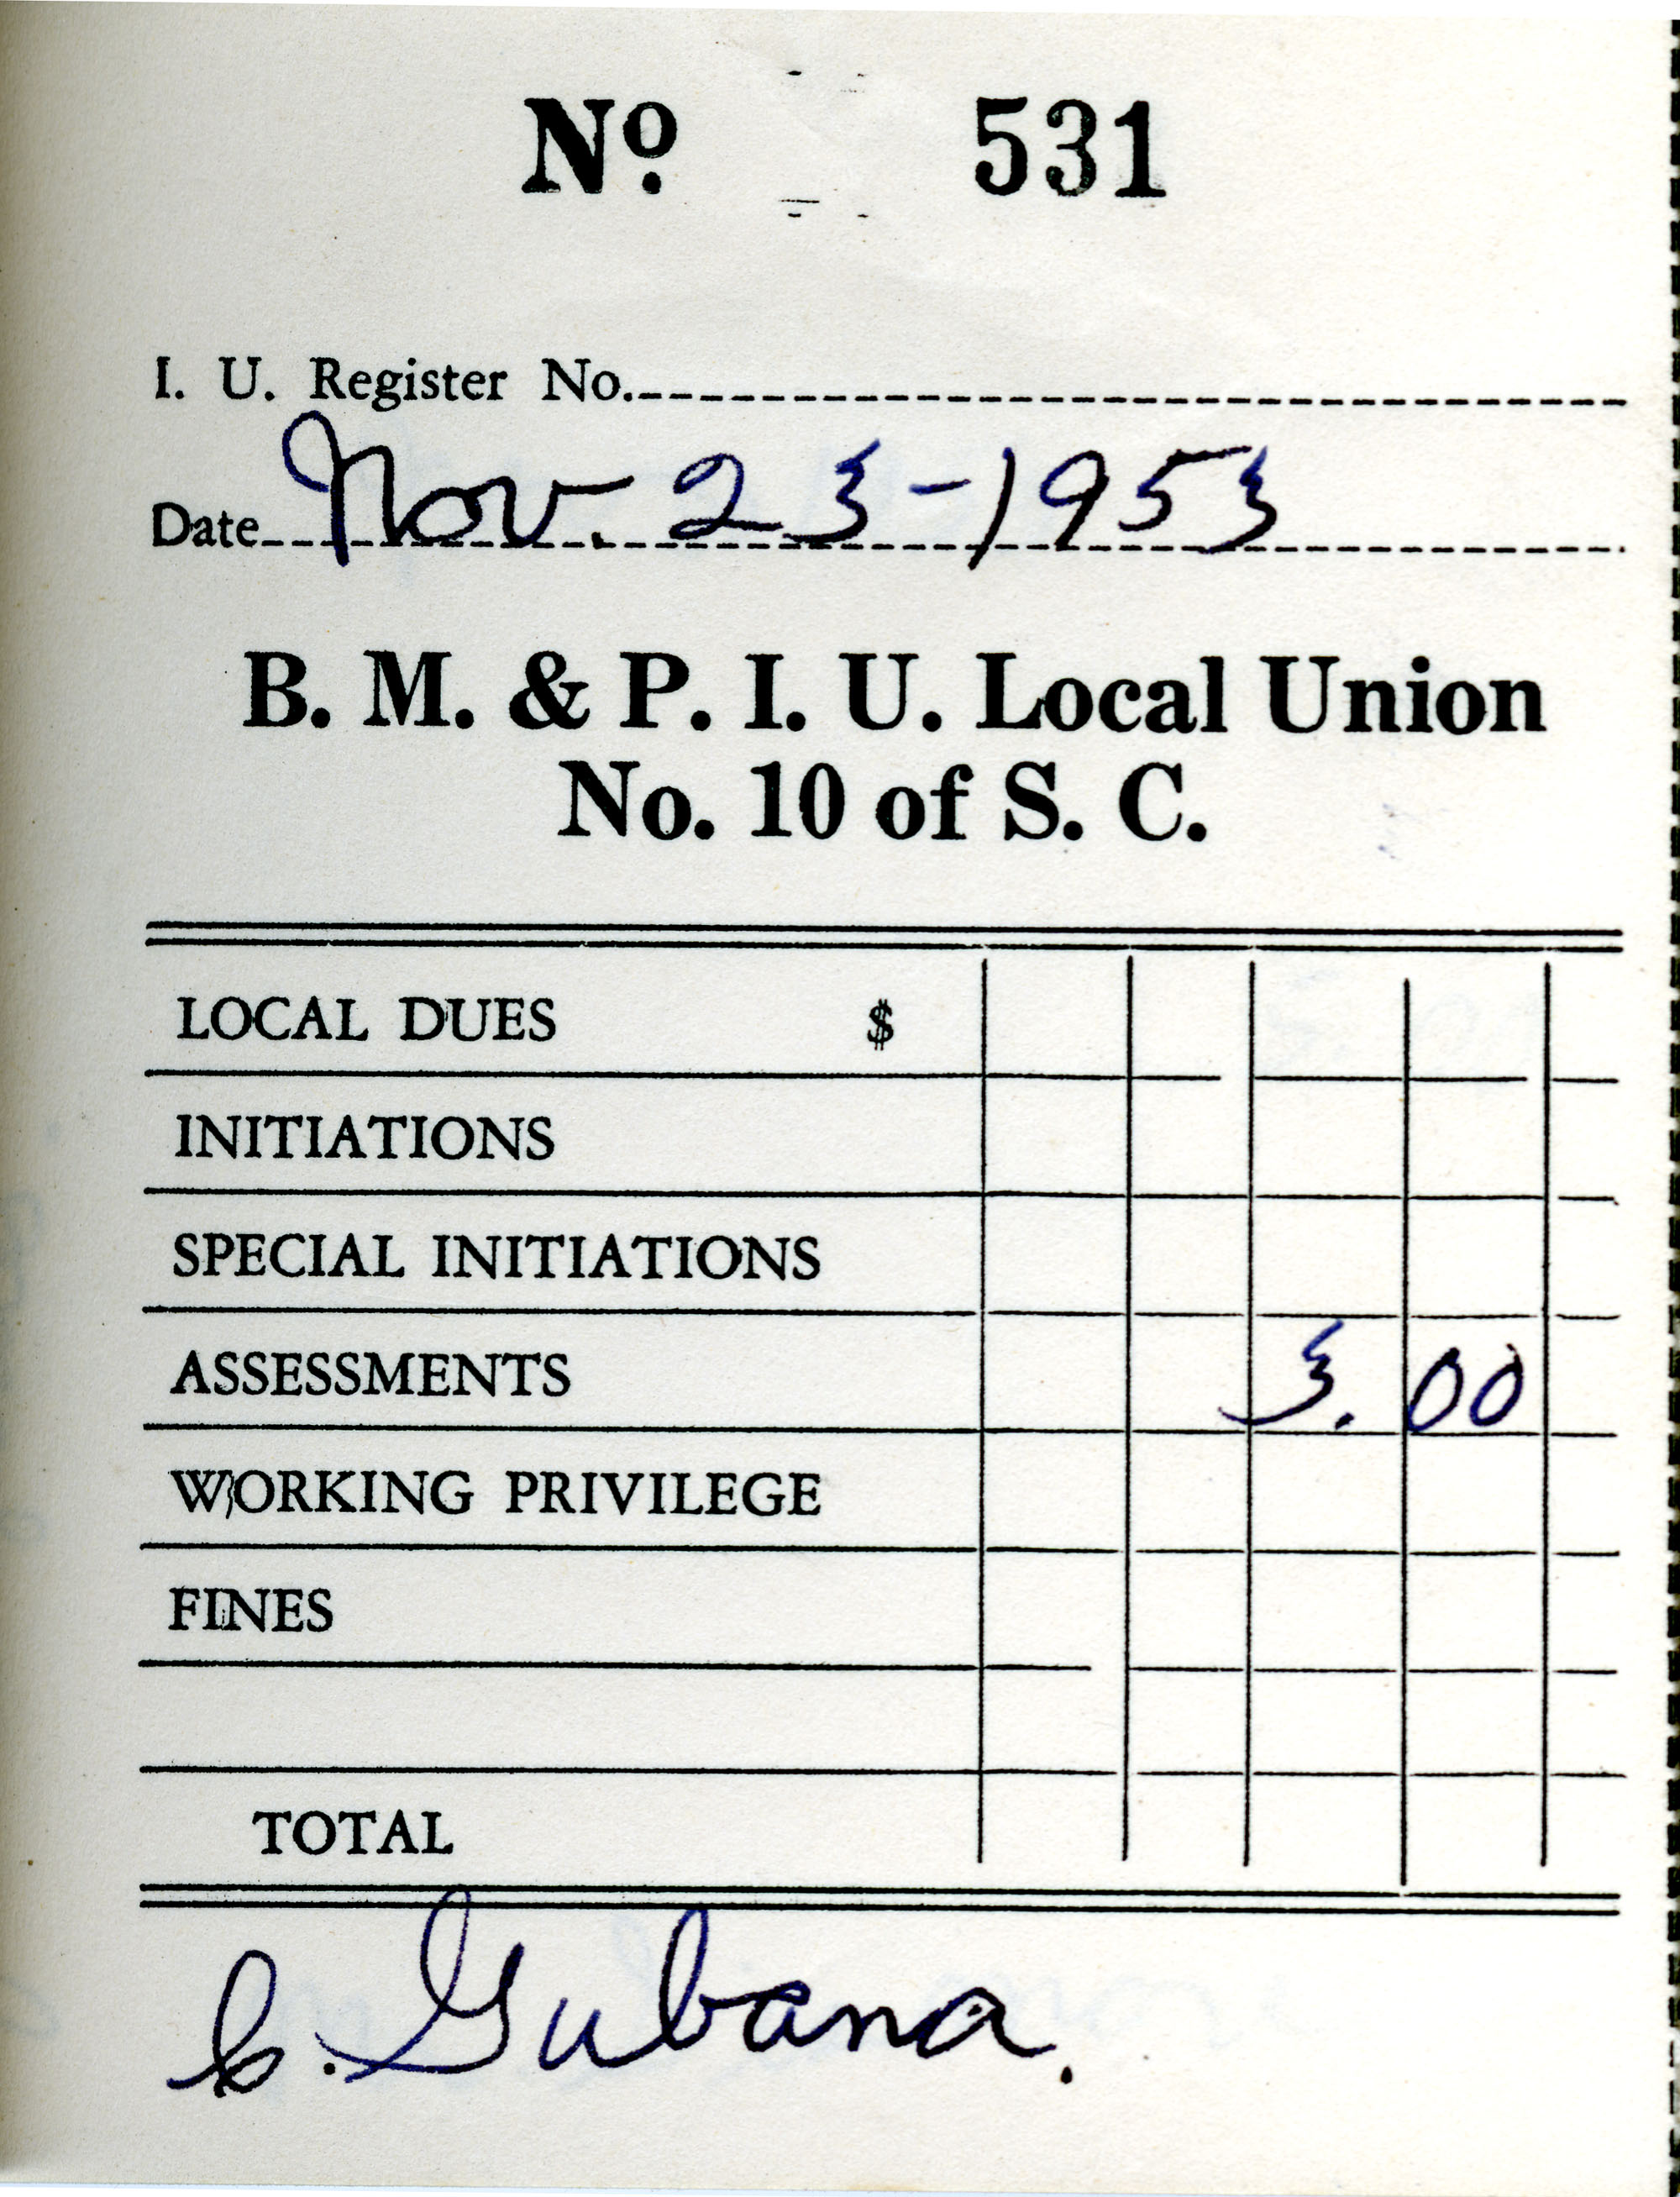 Receipt Book 2, Page 28